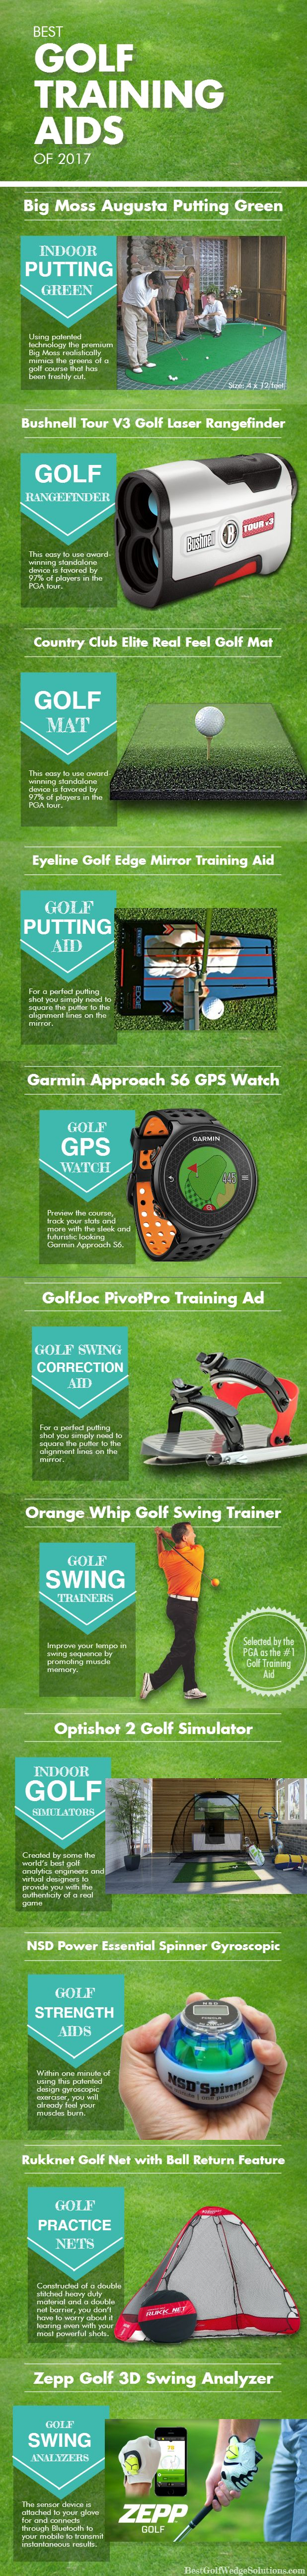 Best Golf Training Aids of 2017 Infographics. With any of these products, you will be able to focus on and improve certain areas of your play that you feel are lacking. You will be well on your way to being the golfer you want to be through practice. http://bestgolfwedgesolutions.com/13-best-golf-training-aids-for-beginners-that-work/ #bigmoss #golf #orangewhip #garmin #golfquotes #golftips #bushnell #golfjoc #garmin #zepp #pga